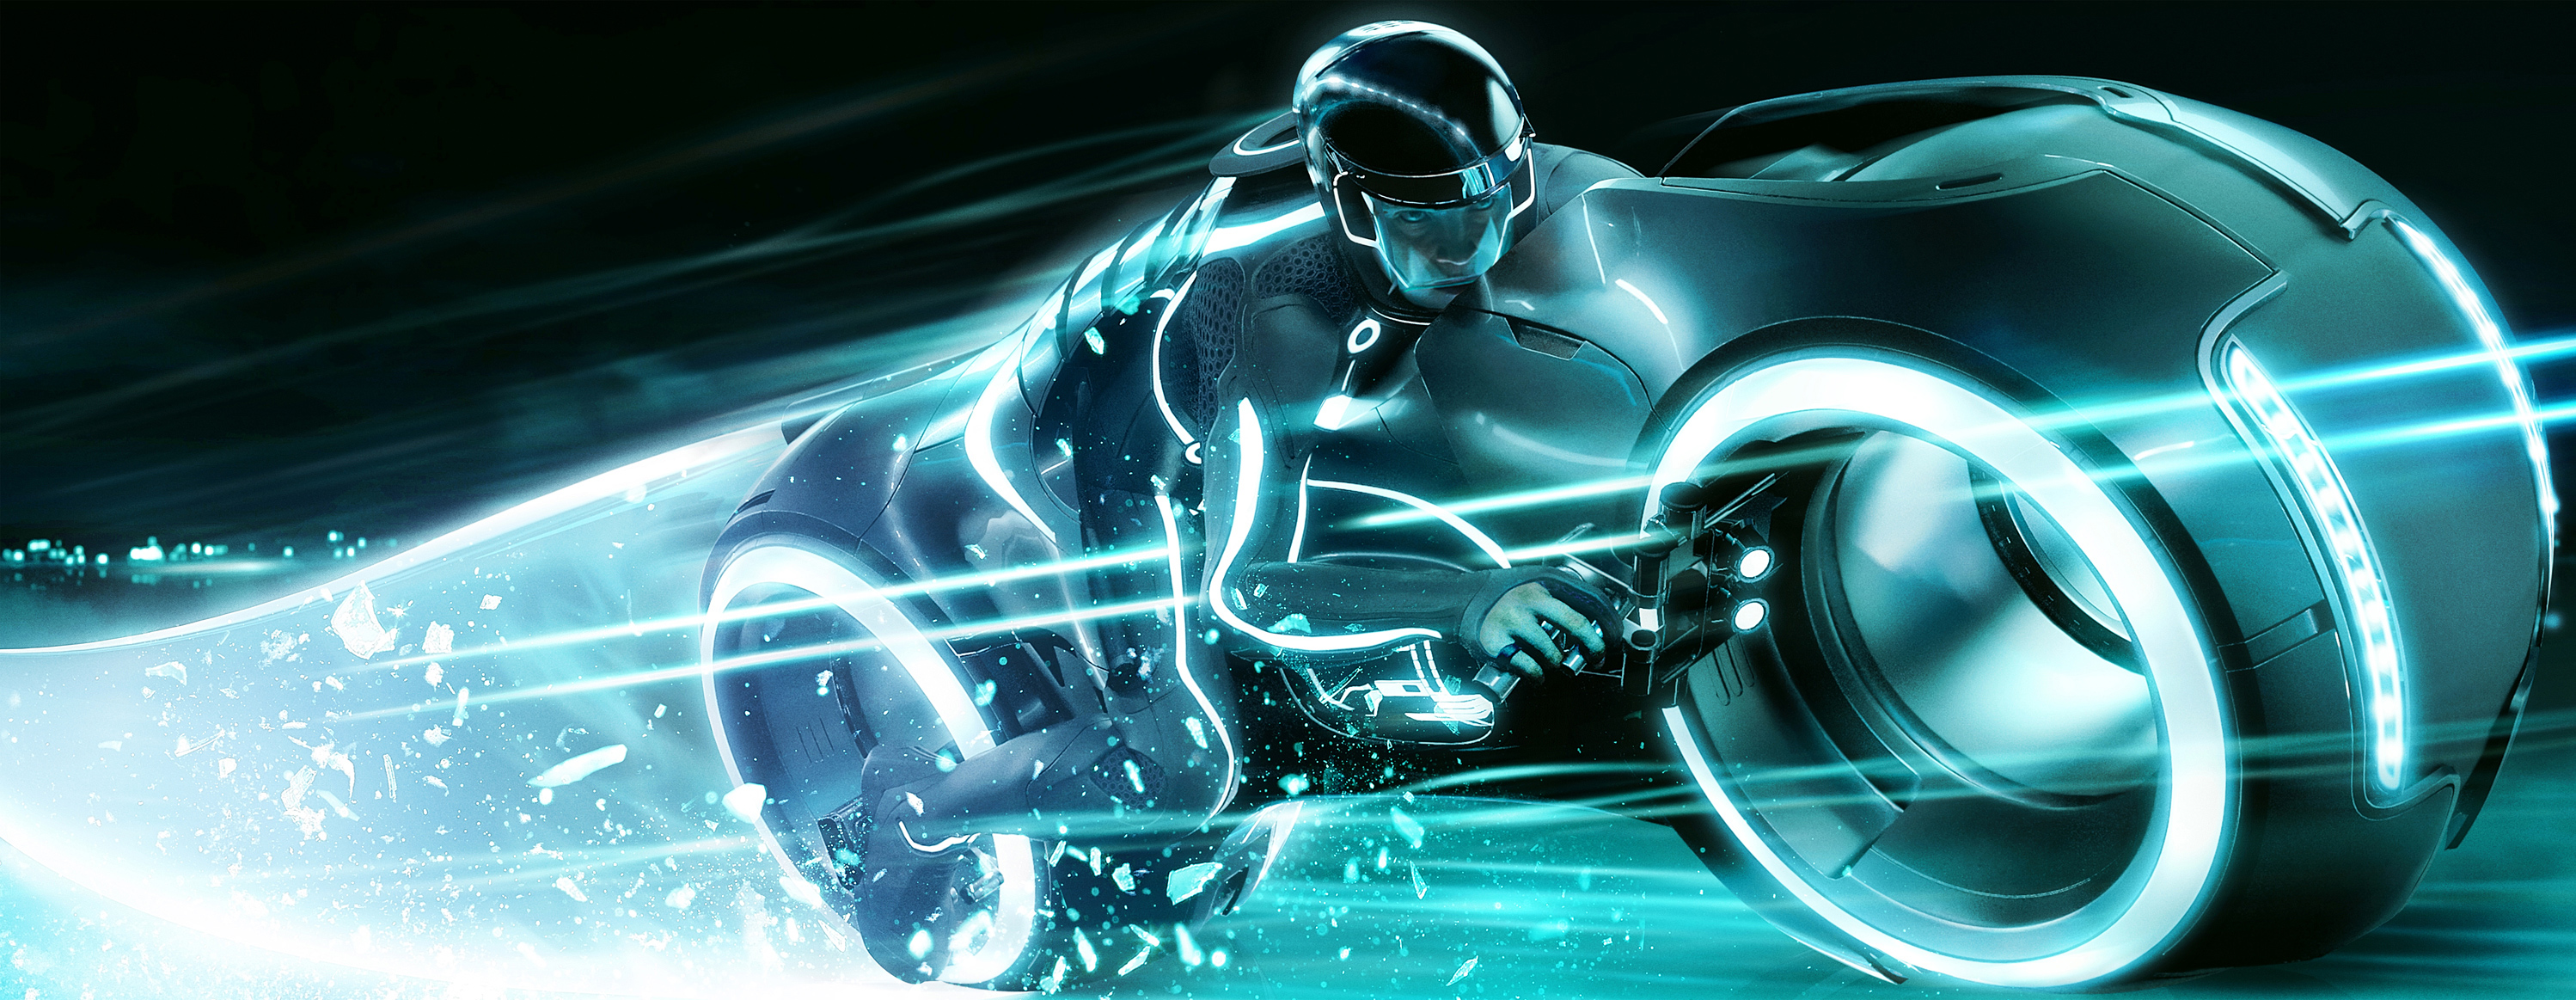 Wallpaper 3d Bike Tron Legacy Download: New TRON: LEGACY Movie Billboard/Banner Featuring Olivia